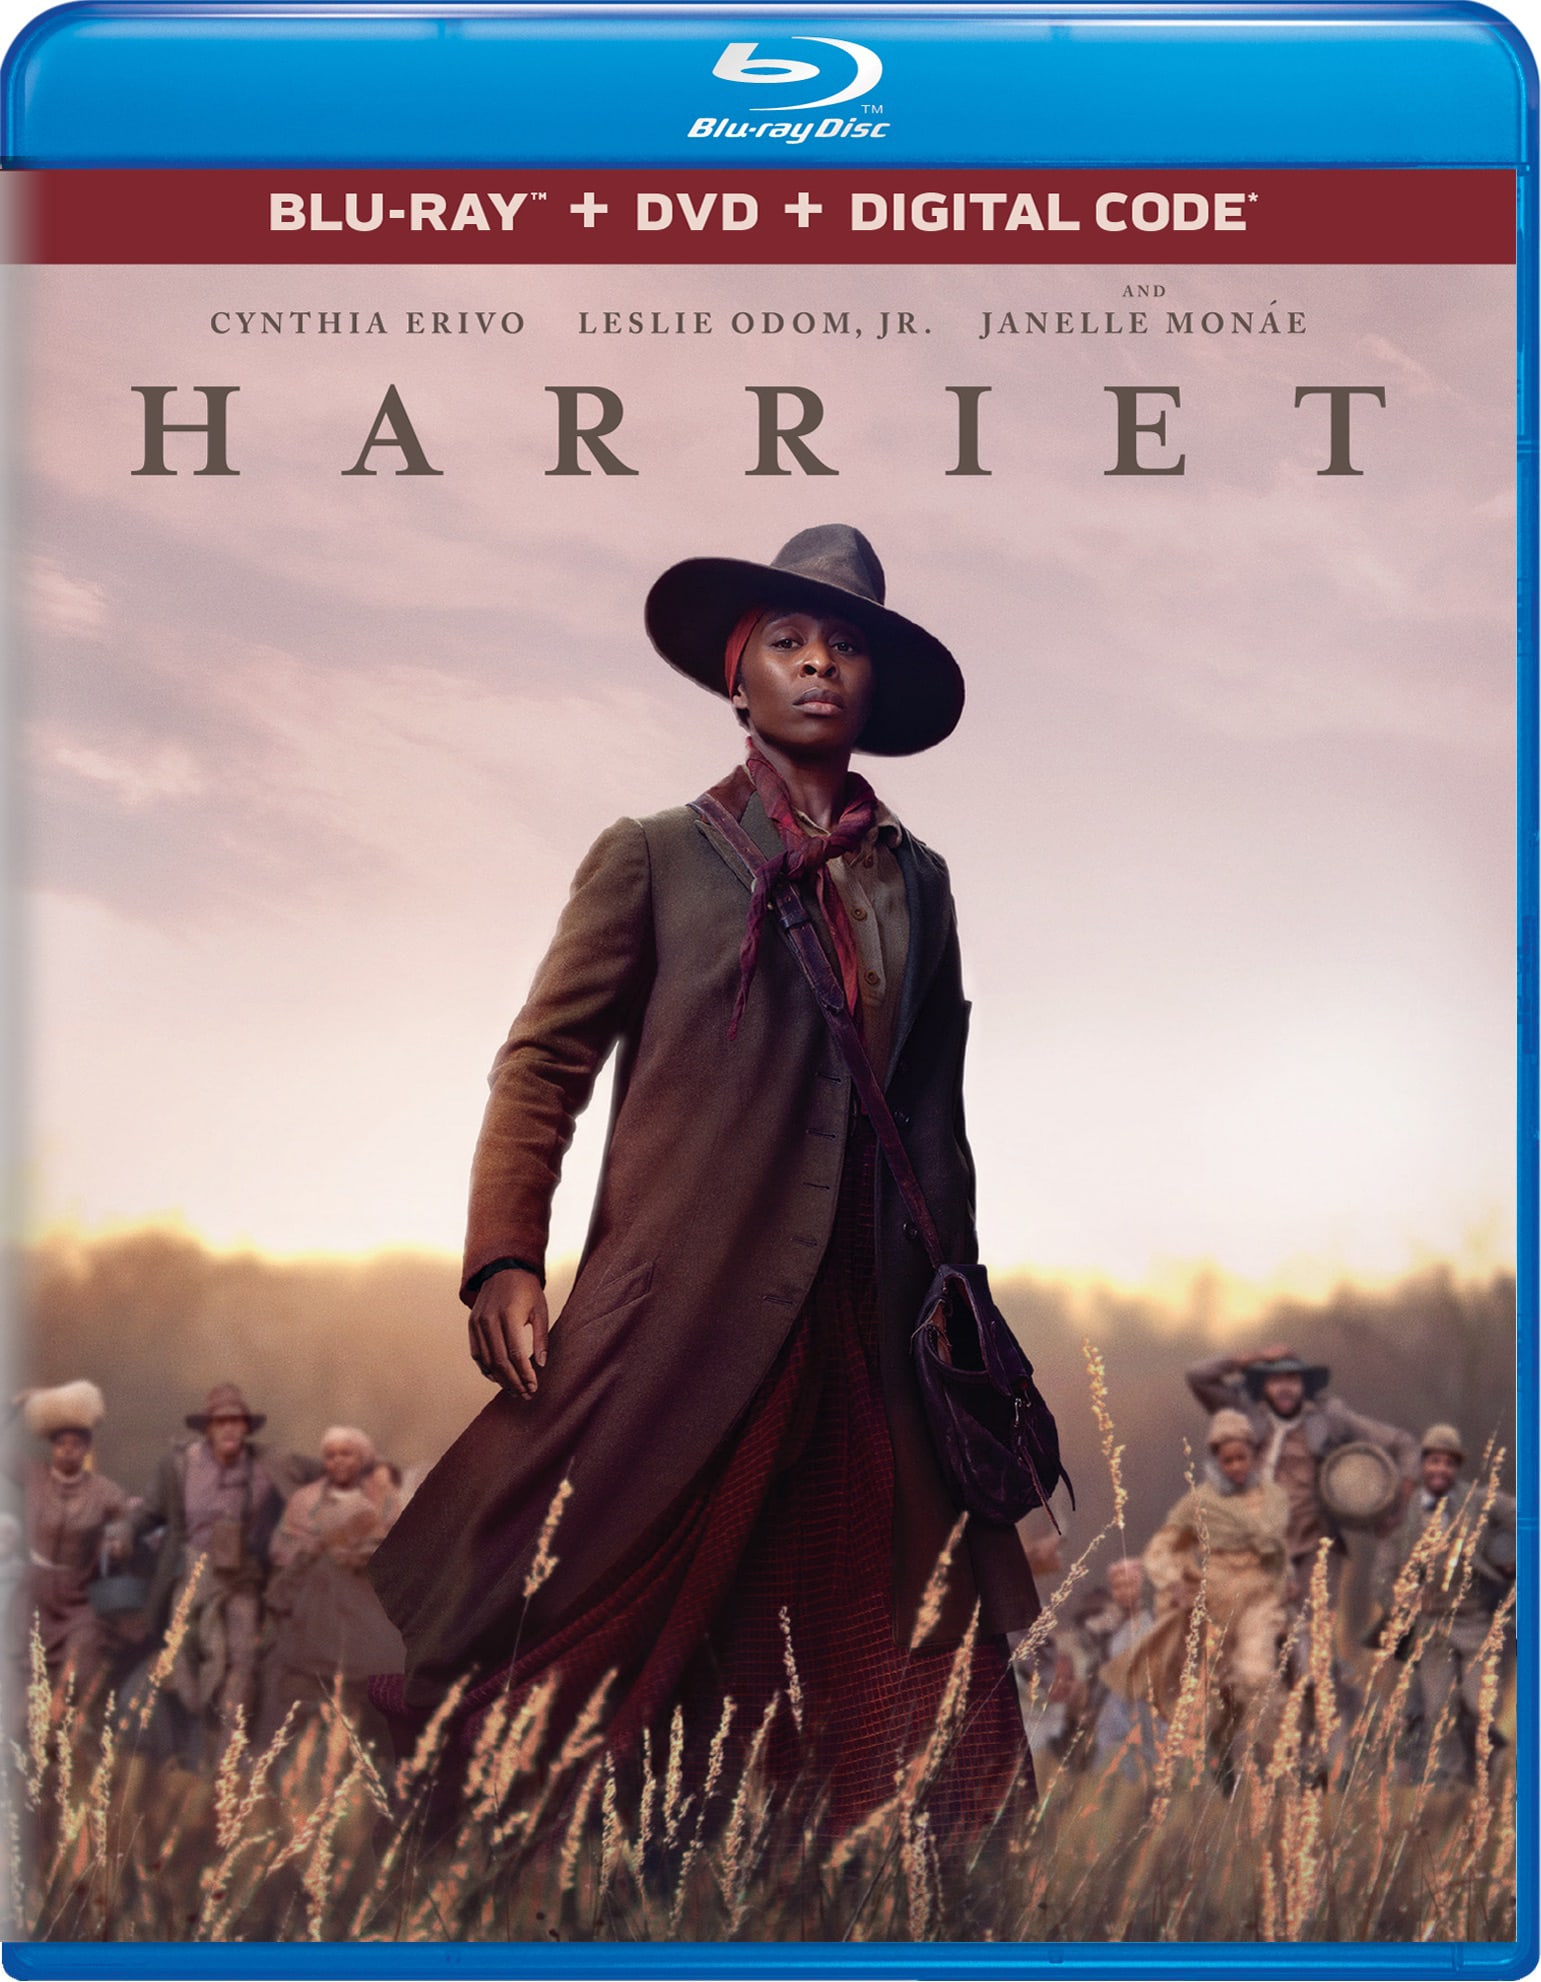 Harriet (DVD + Digital) [Blu-ray]